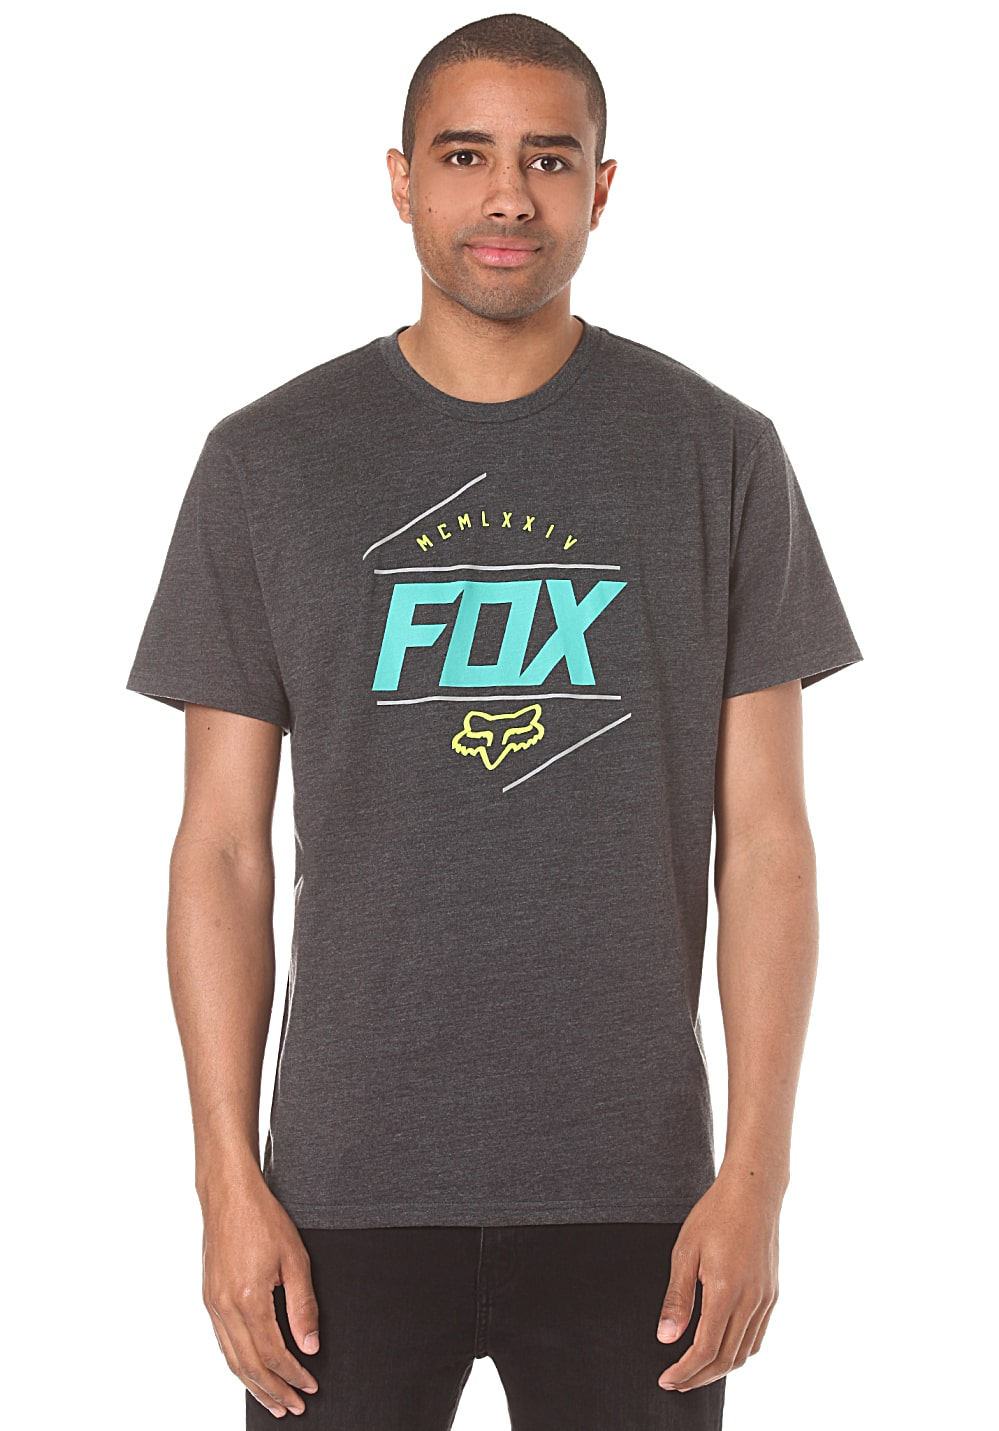 FOX Looped Out - T-Shirt für Herren - Grau - S